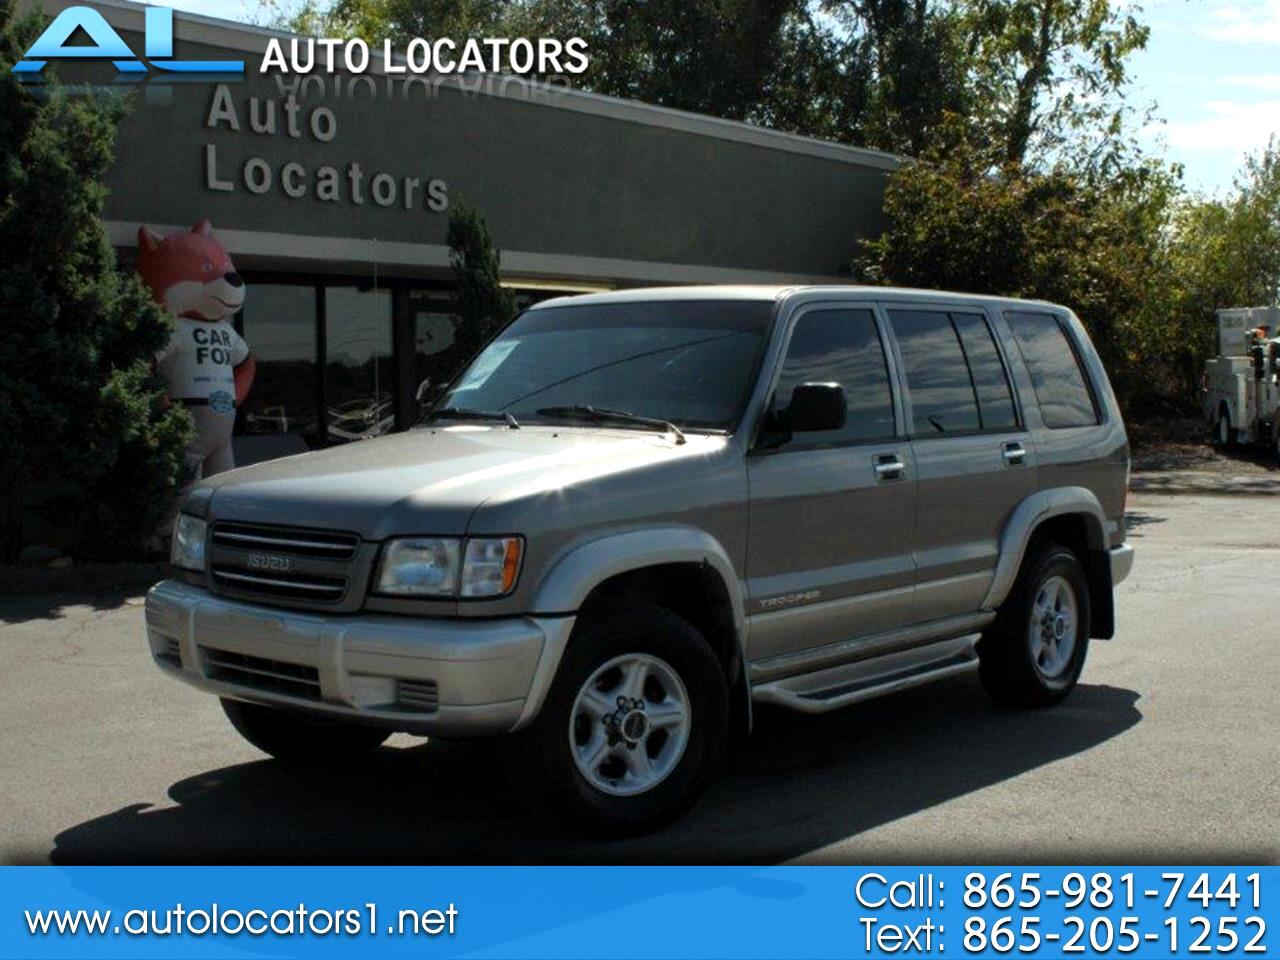 2001 Isuzu Trooper 4dr LTD Auto